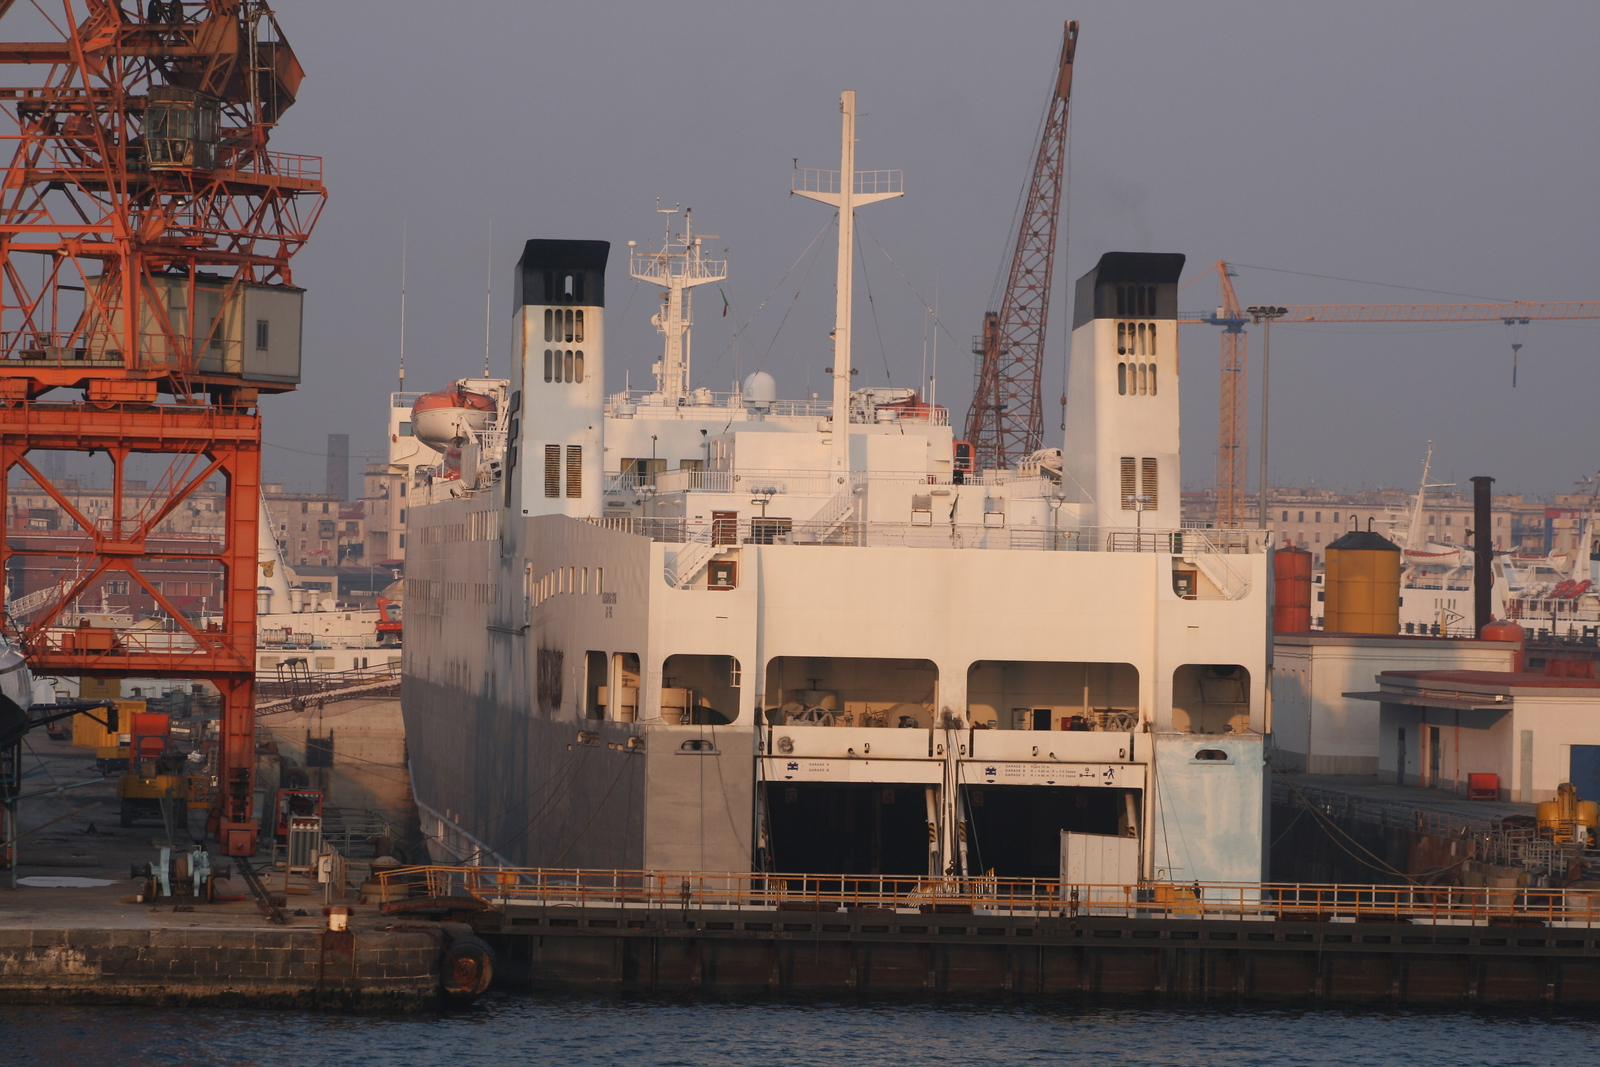 F/B VICTORY renaming as CHIHUAHUA STAR and repainting in shipyard in Napoli.